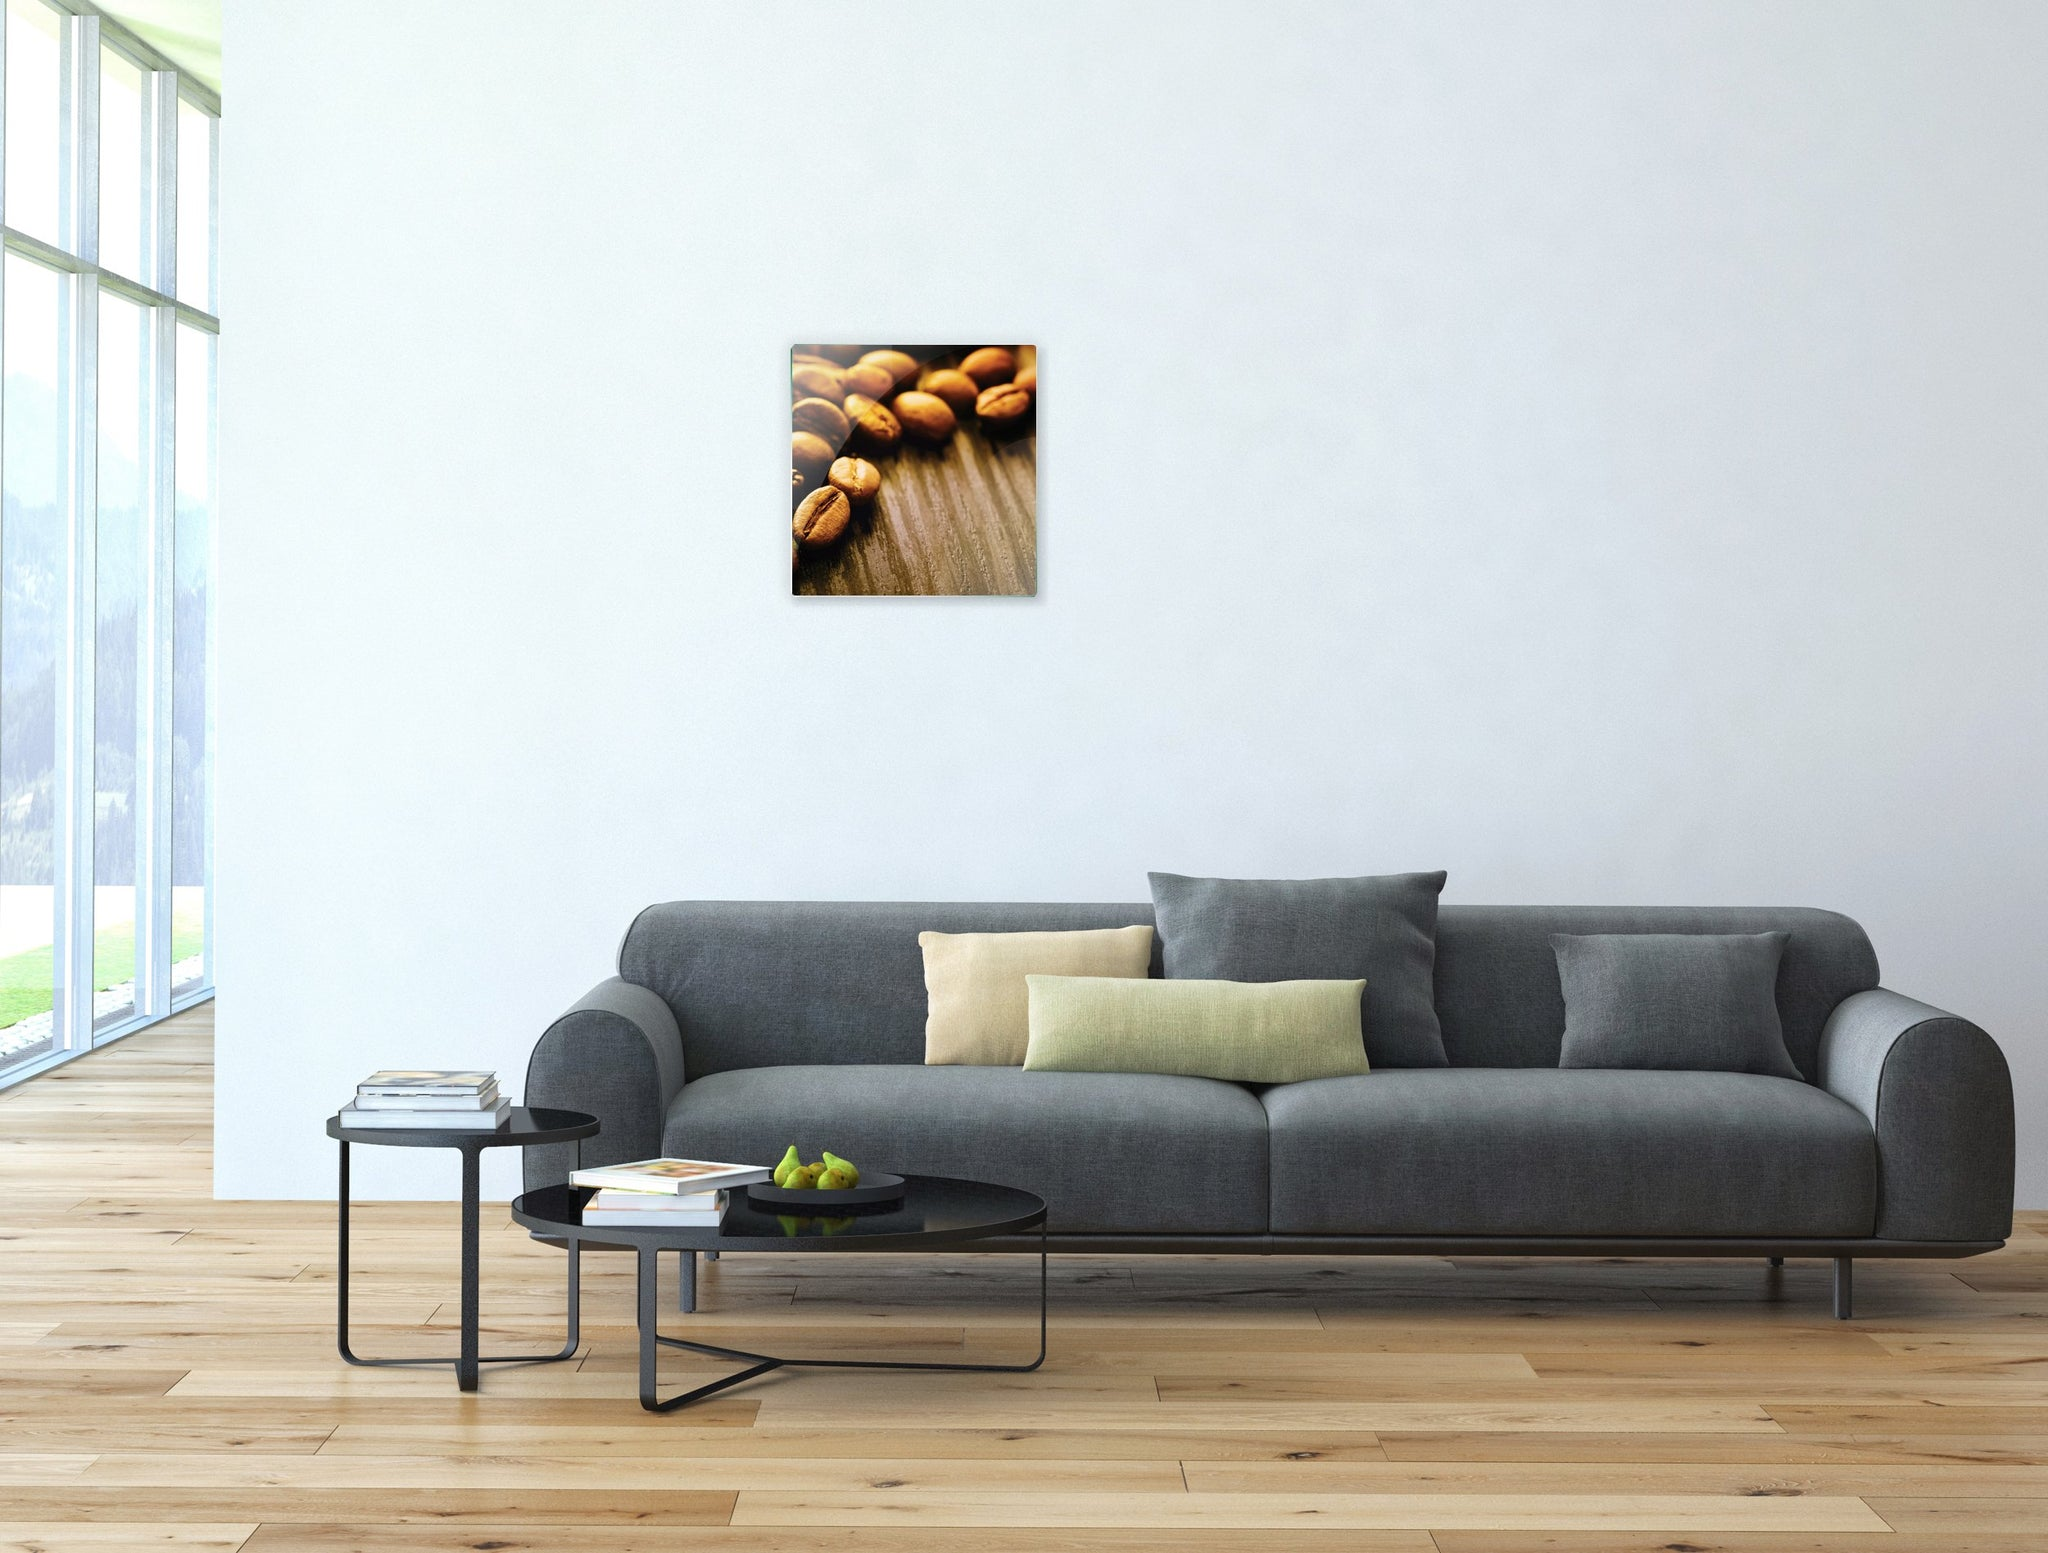 Art wall pictures Coffe - AP041 - Art Life Decor